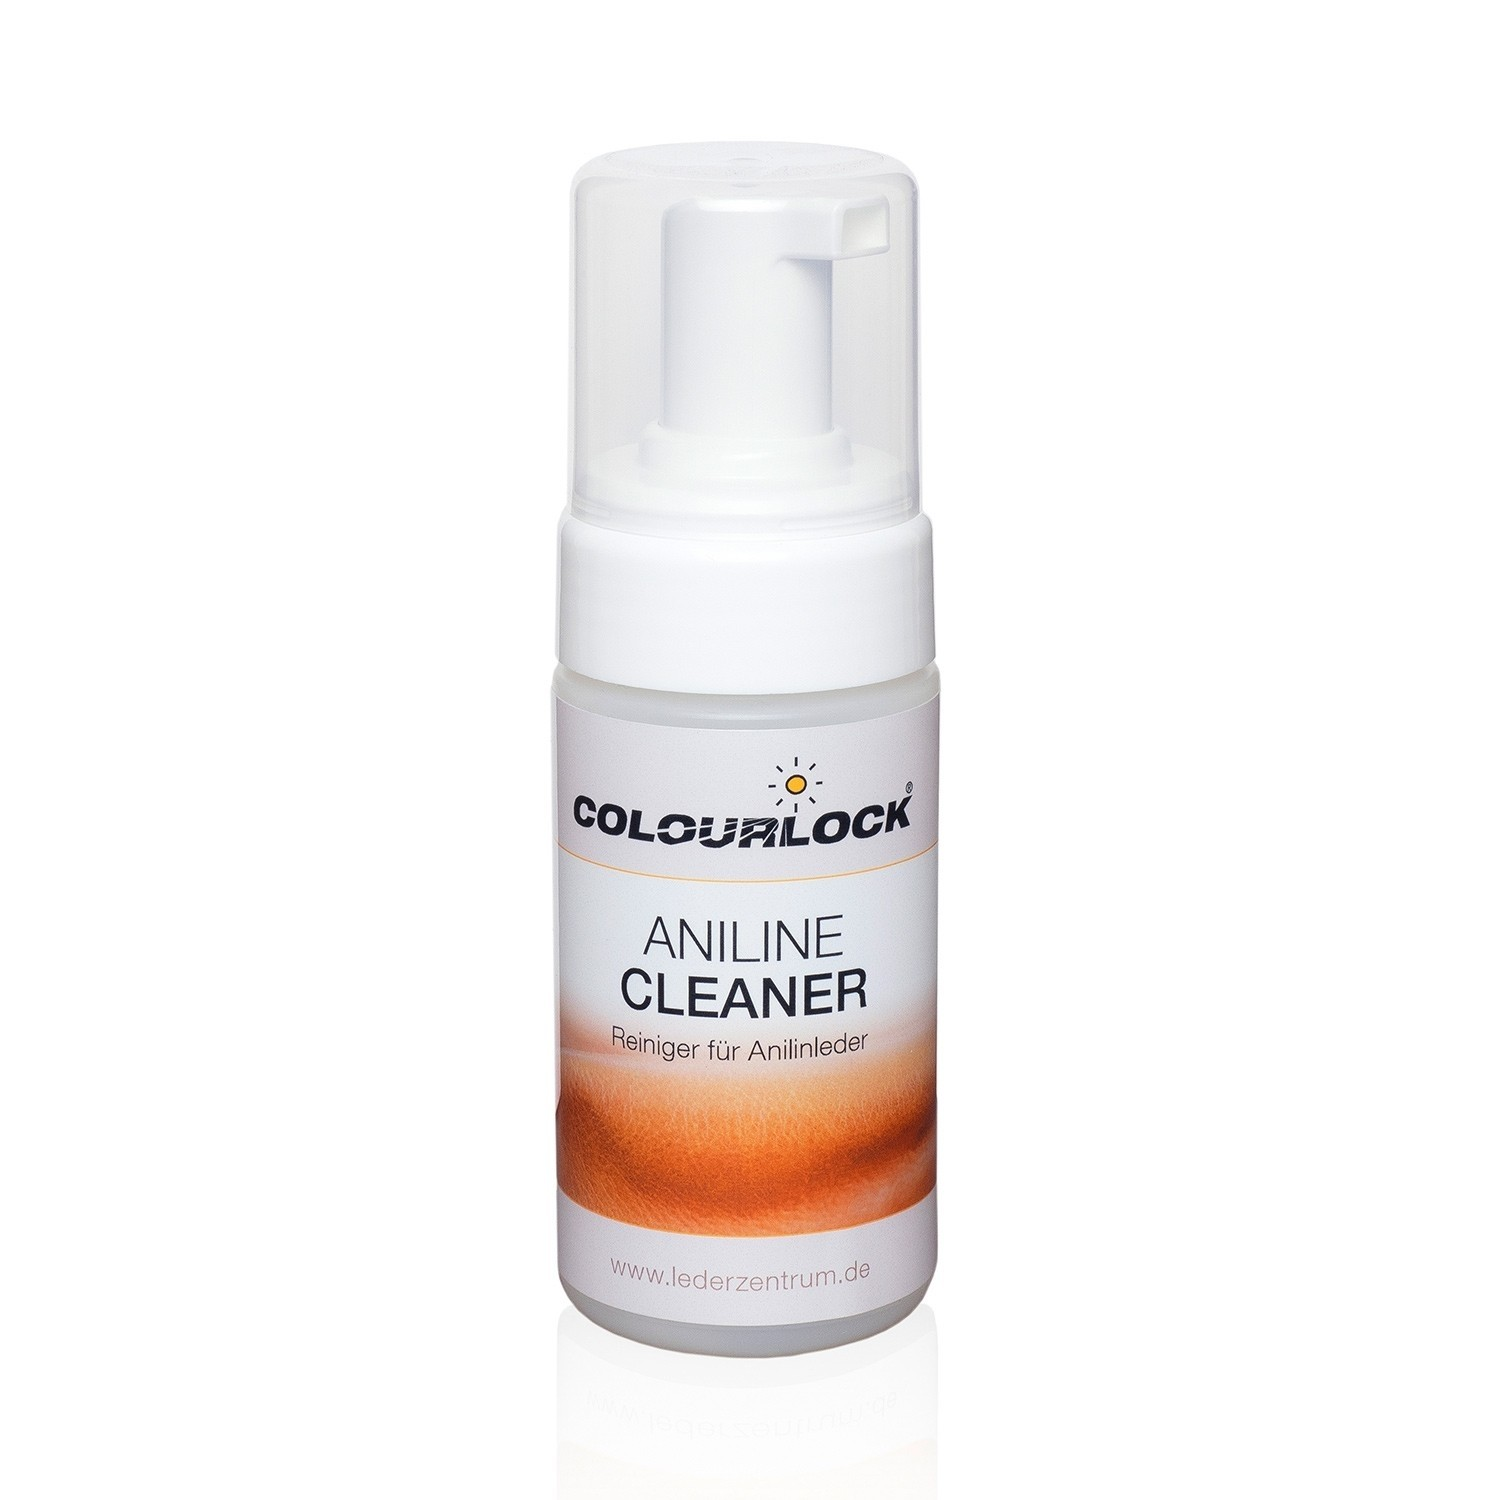 Aniline Cleaner